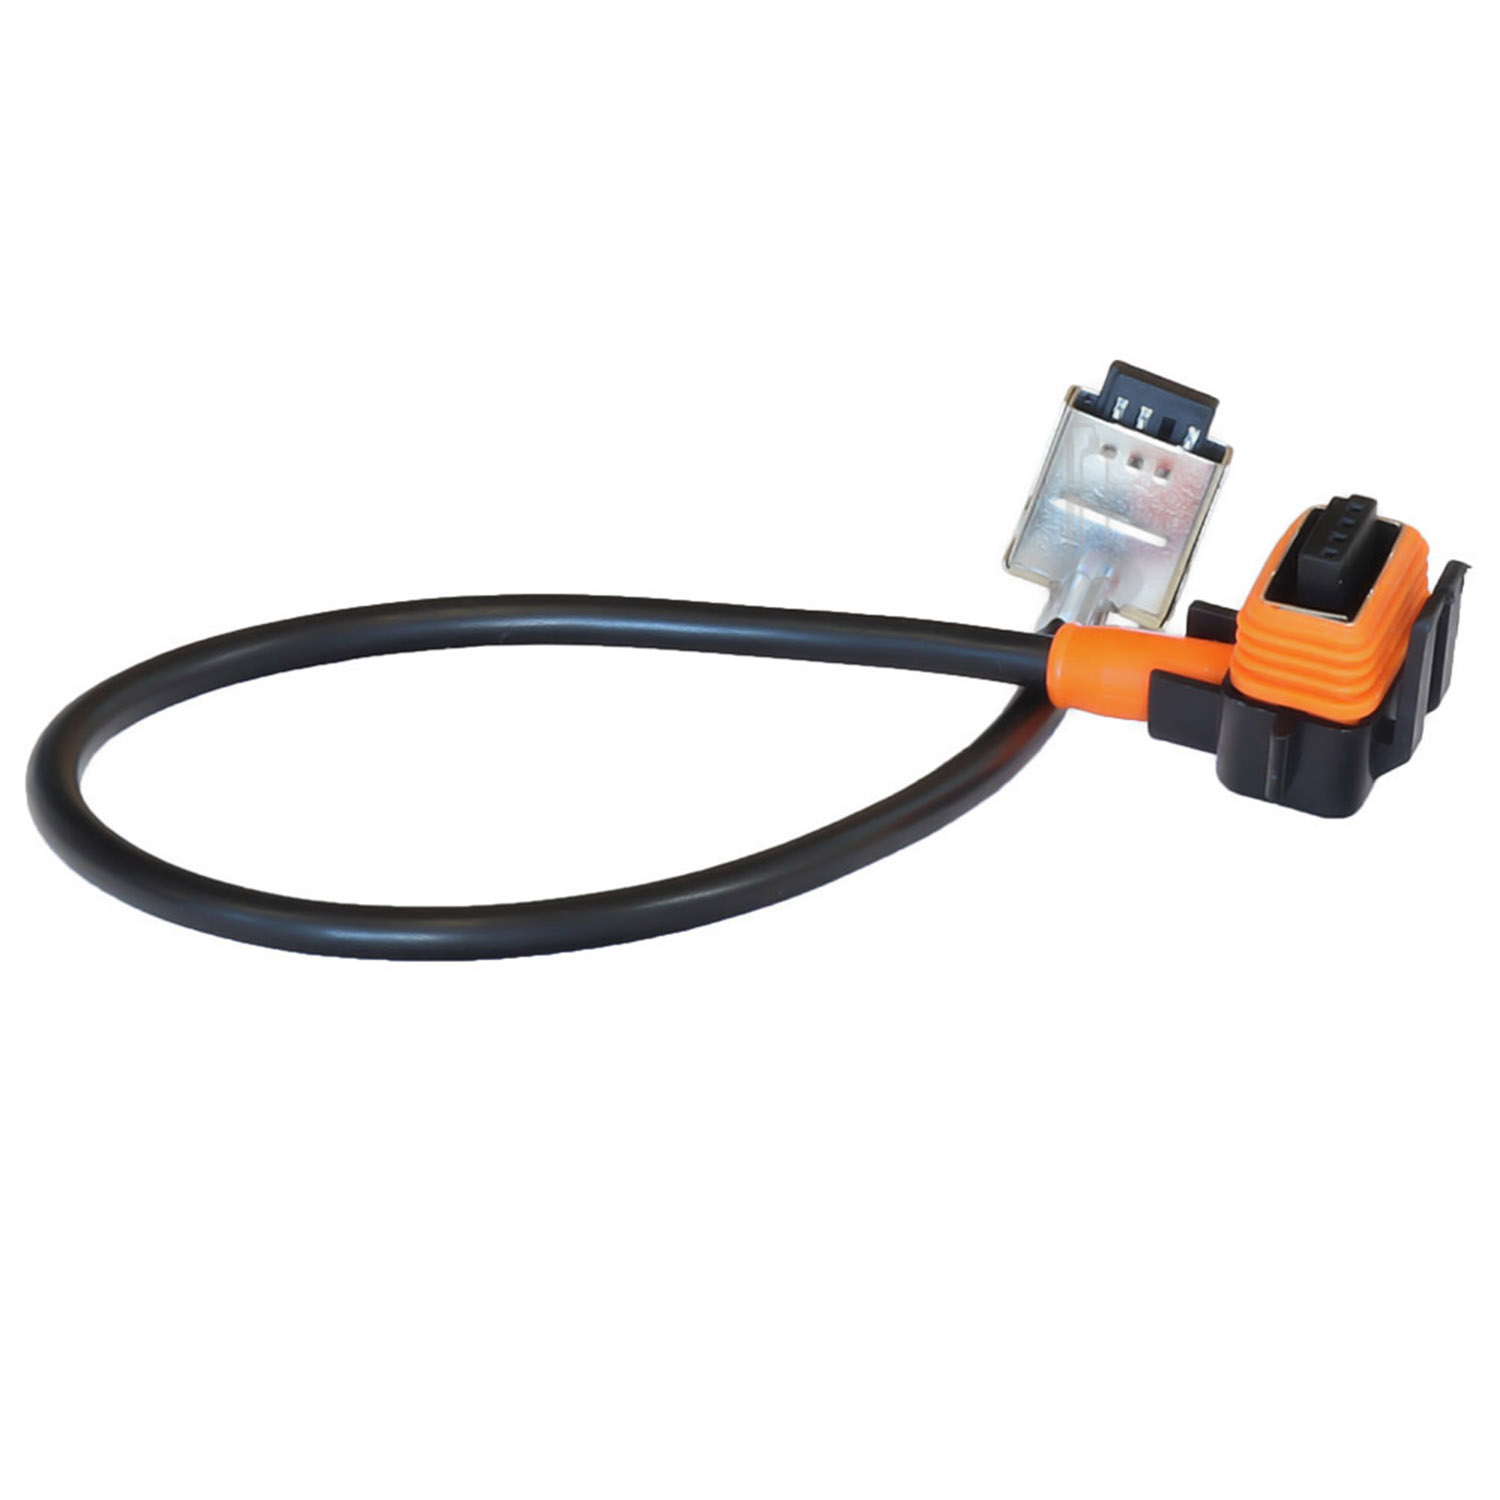 D1S Xenon control unit connection cable - 30cm for Osram